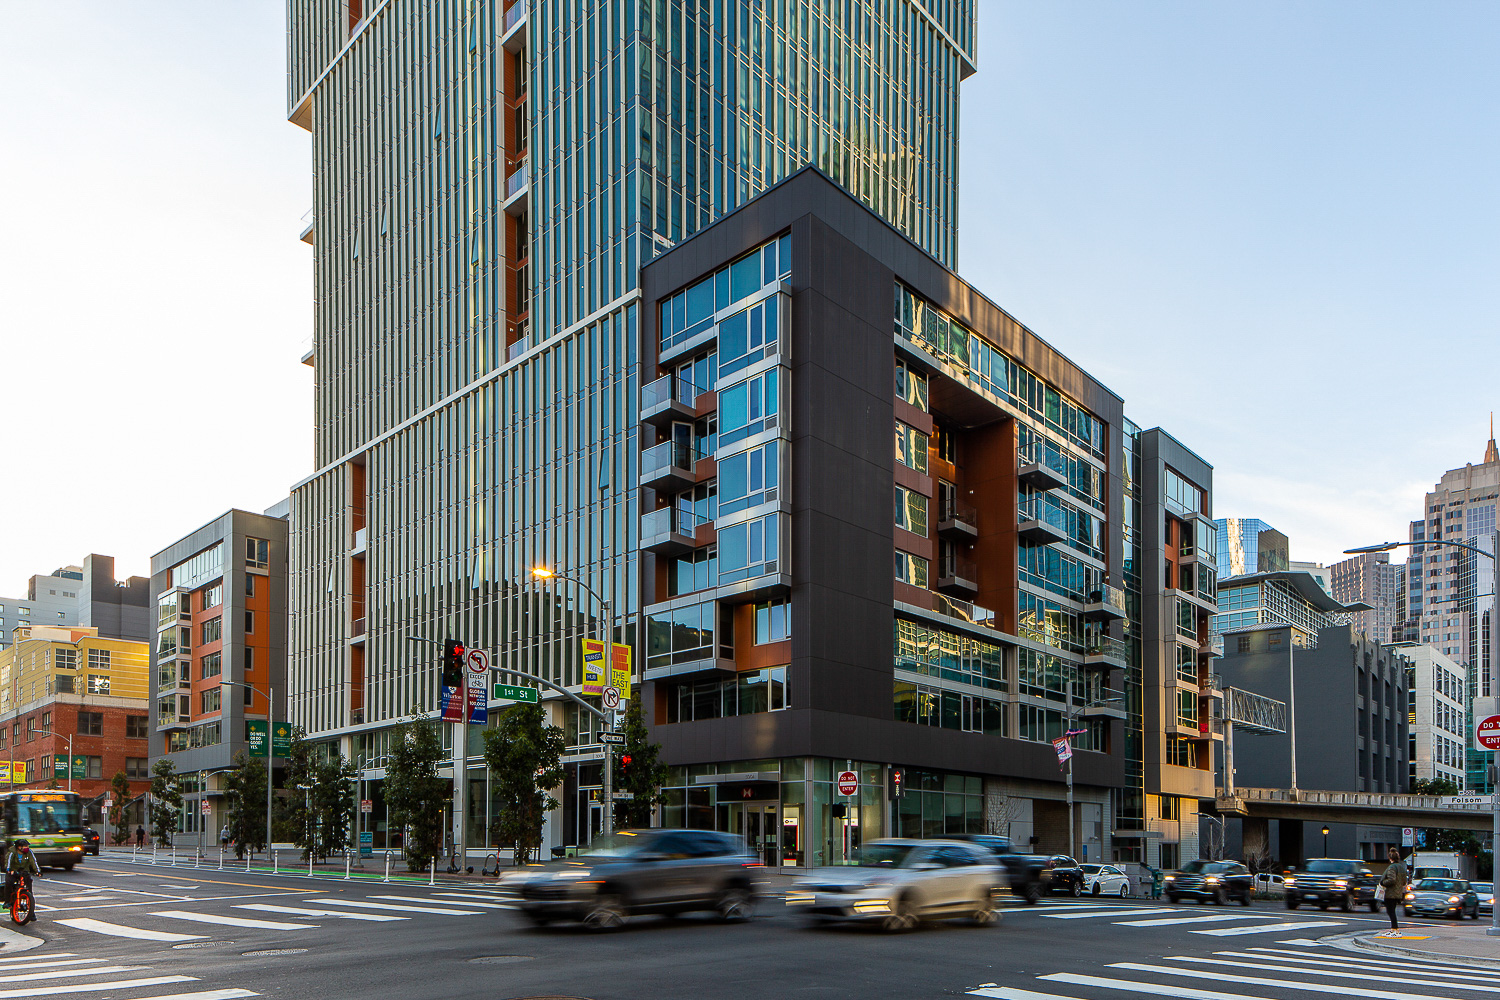 500 Folsom Street podium, image by Andrew Campbell Nelson